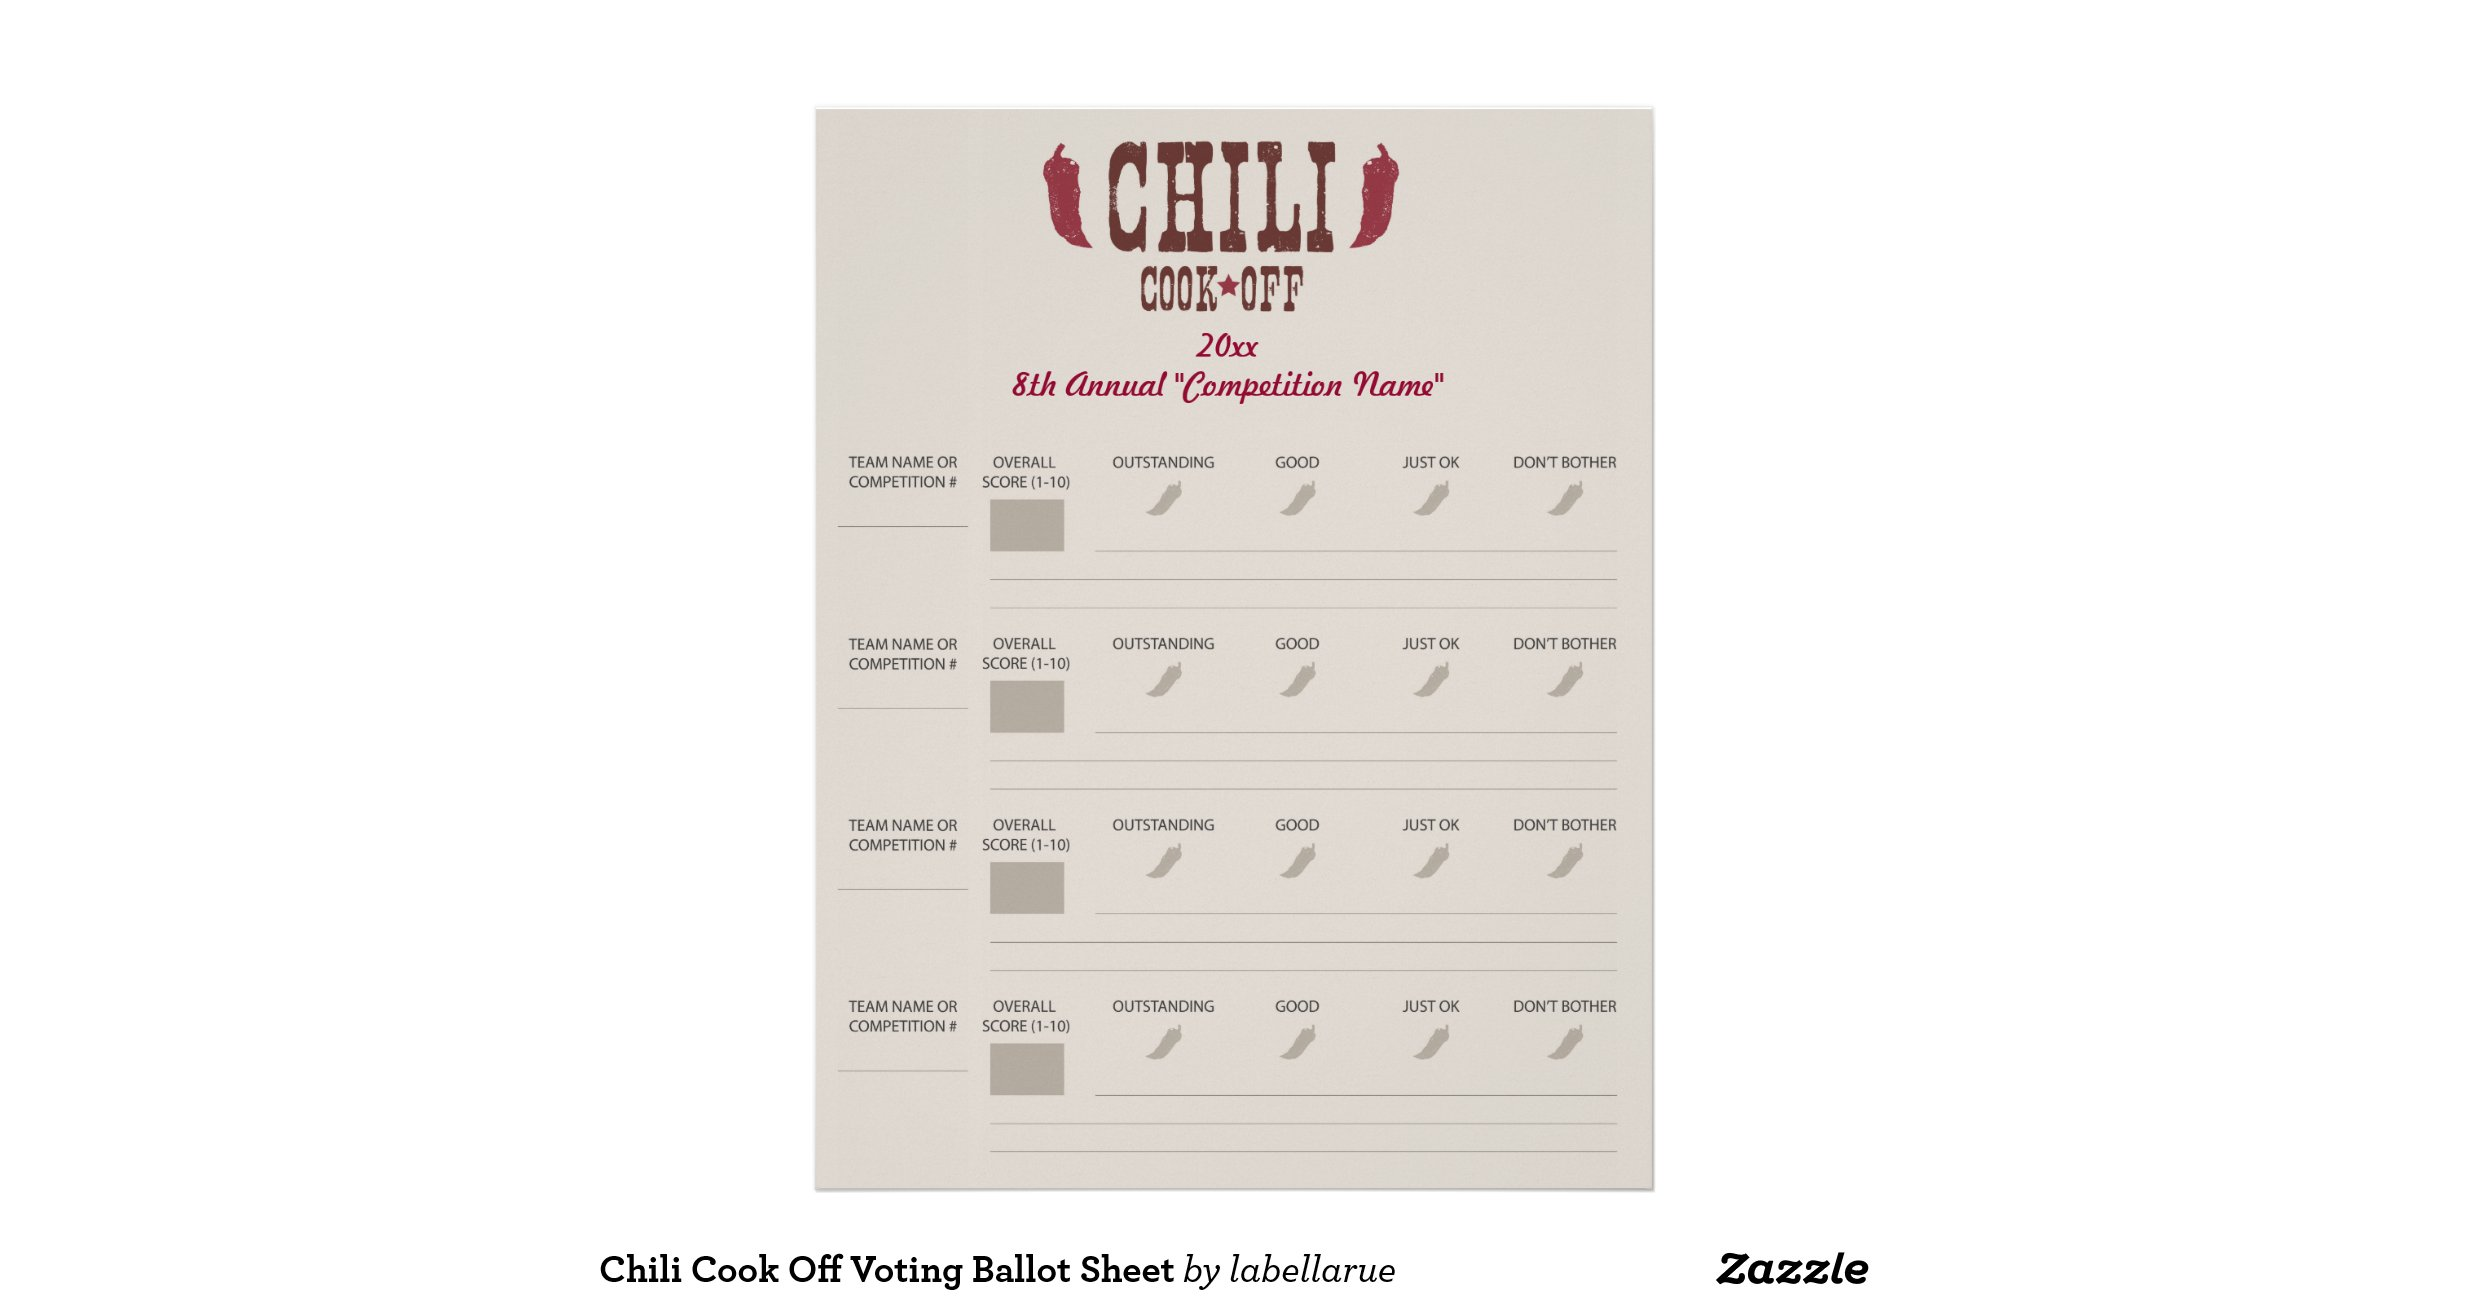 chili cook off voting ballot sheet letterhead